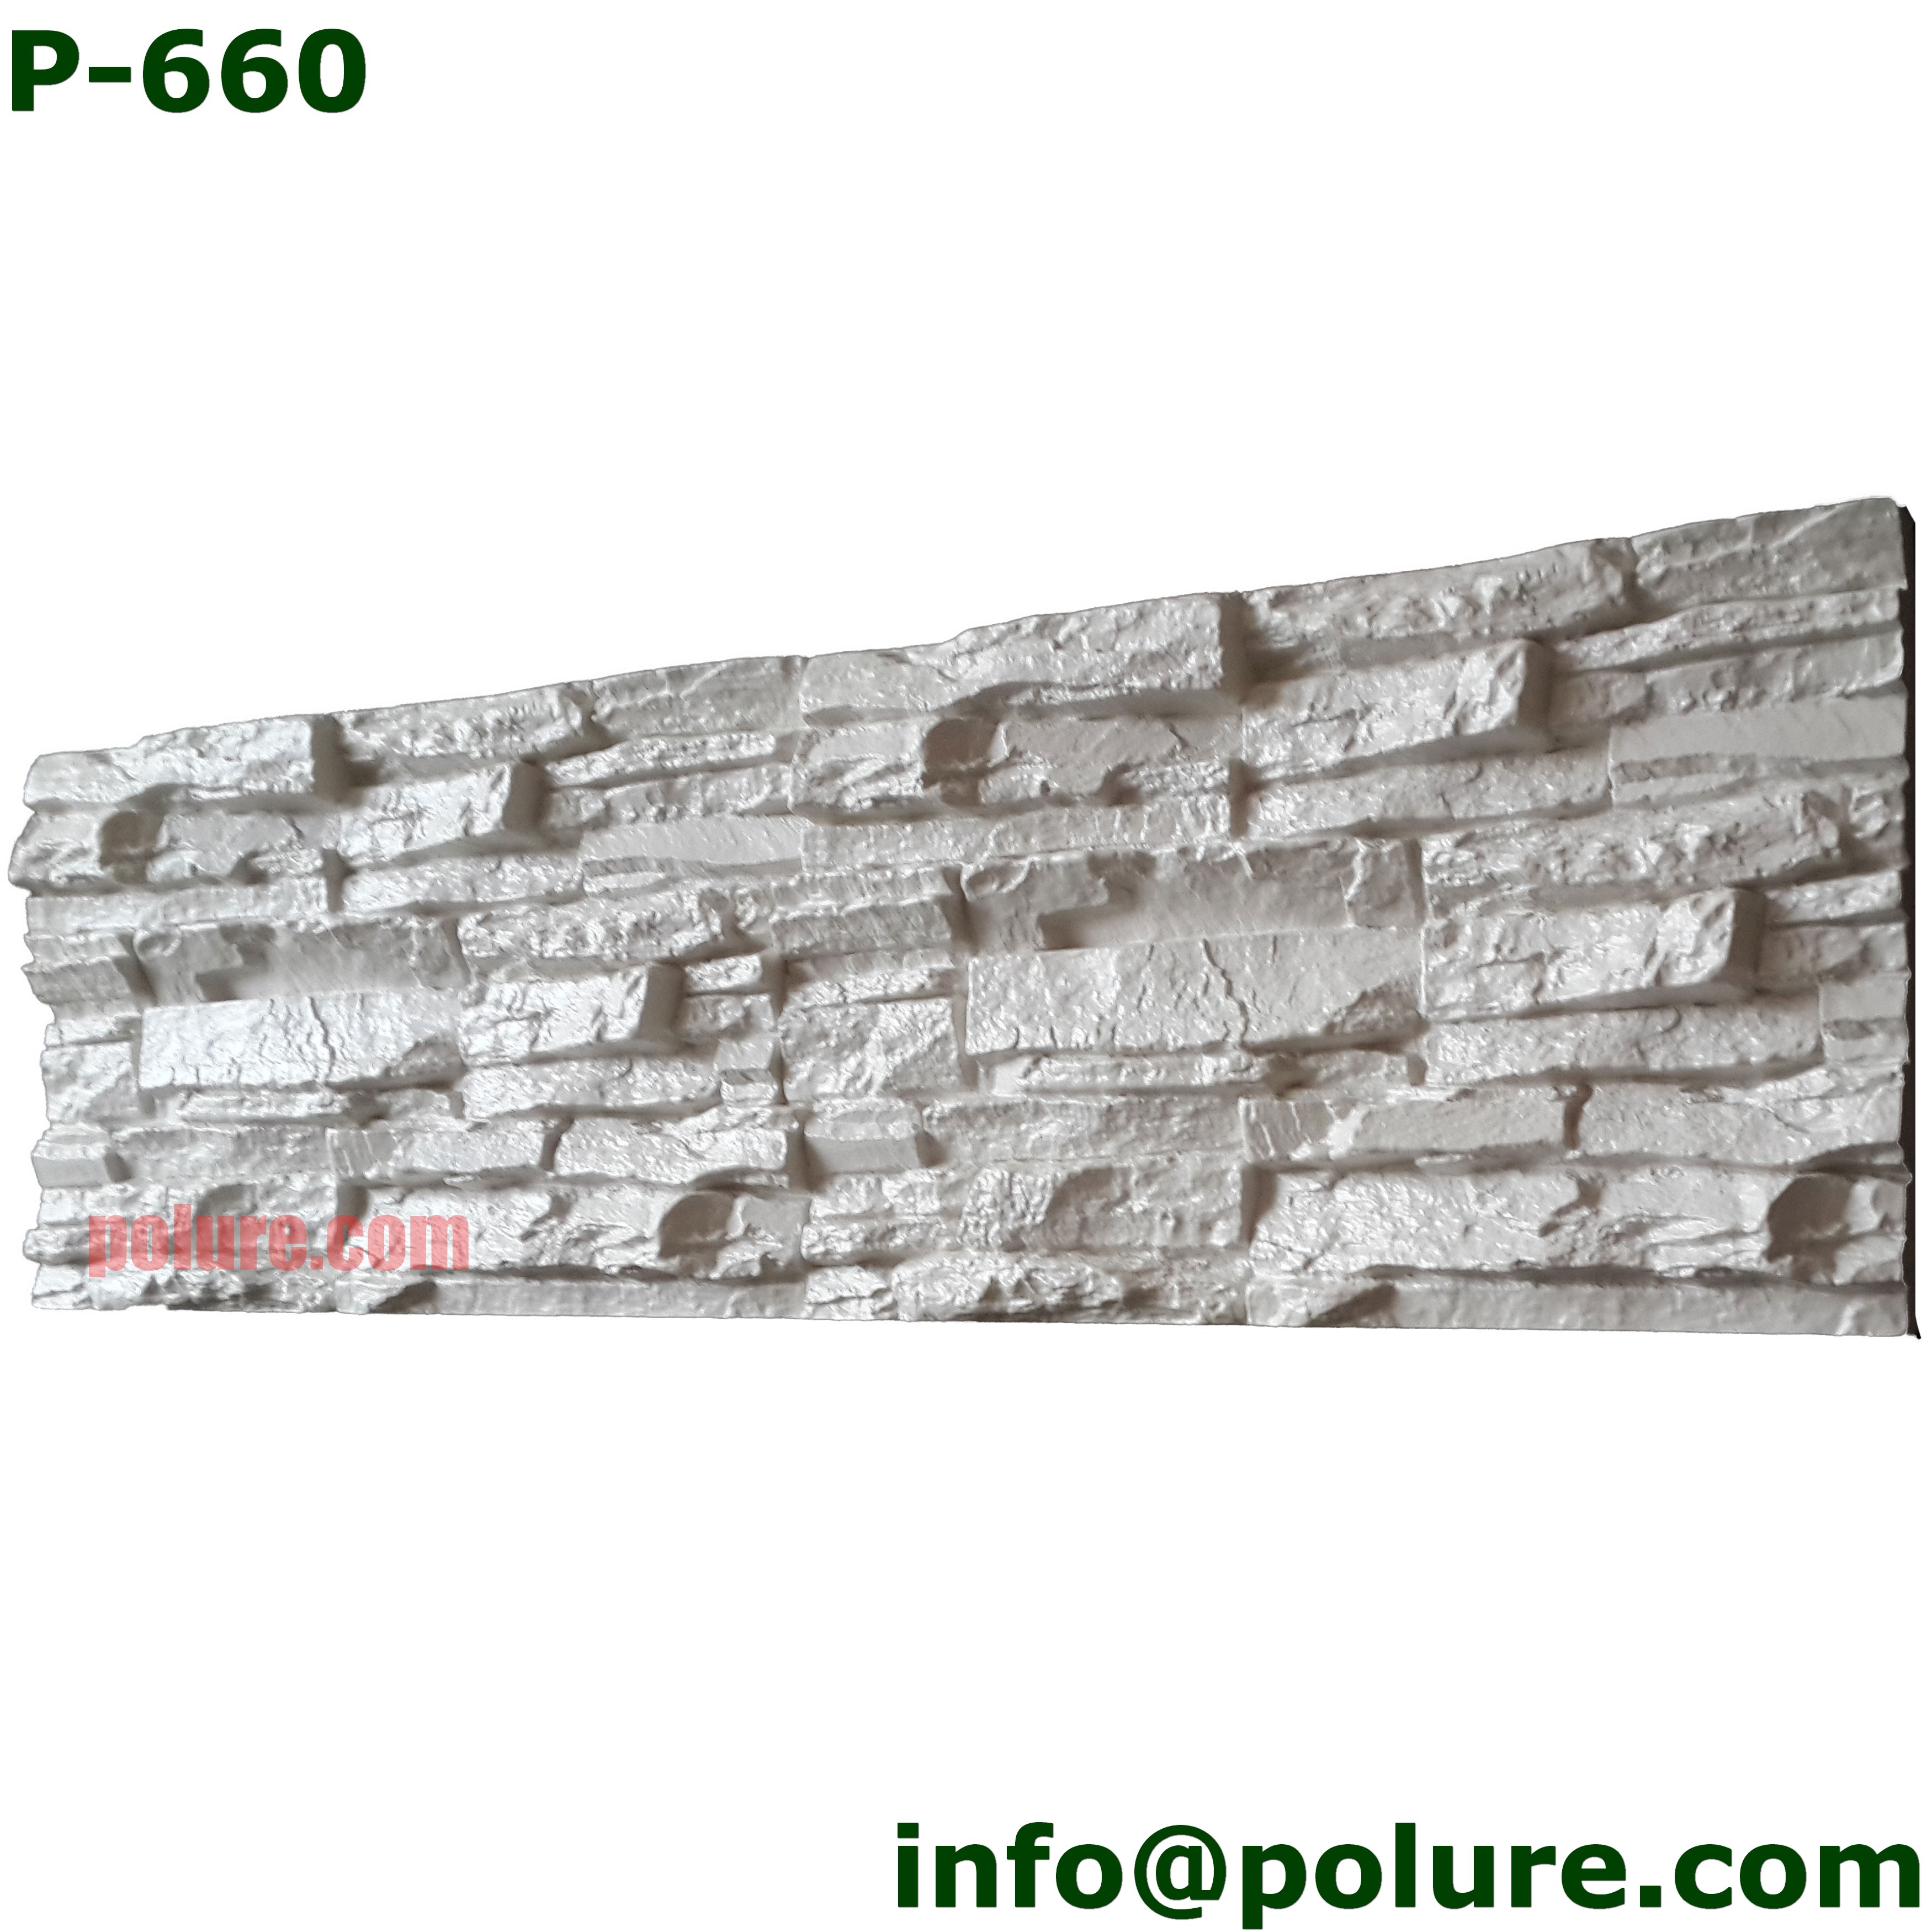 p-660-decorative-polyurethane-stone-look-like-moulding-panel-for-garden-wall-coted-rock-imitation-pu-for-interior-exterior decoration-board-price (27)